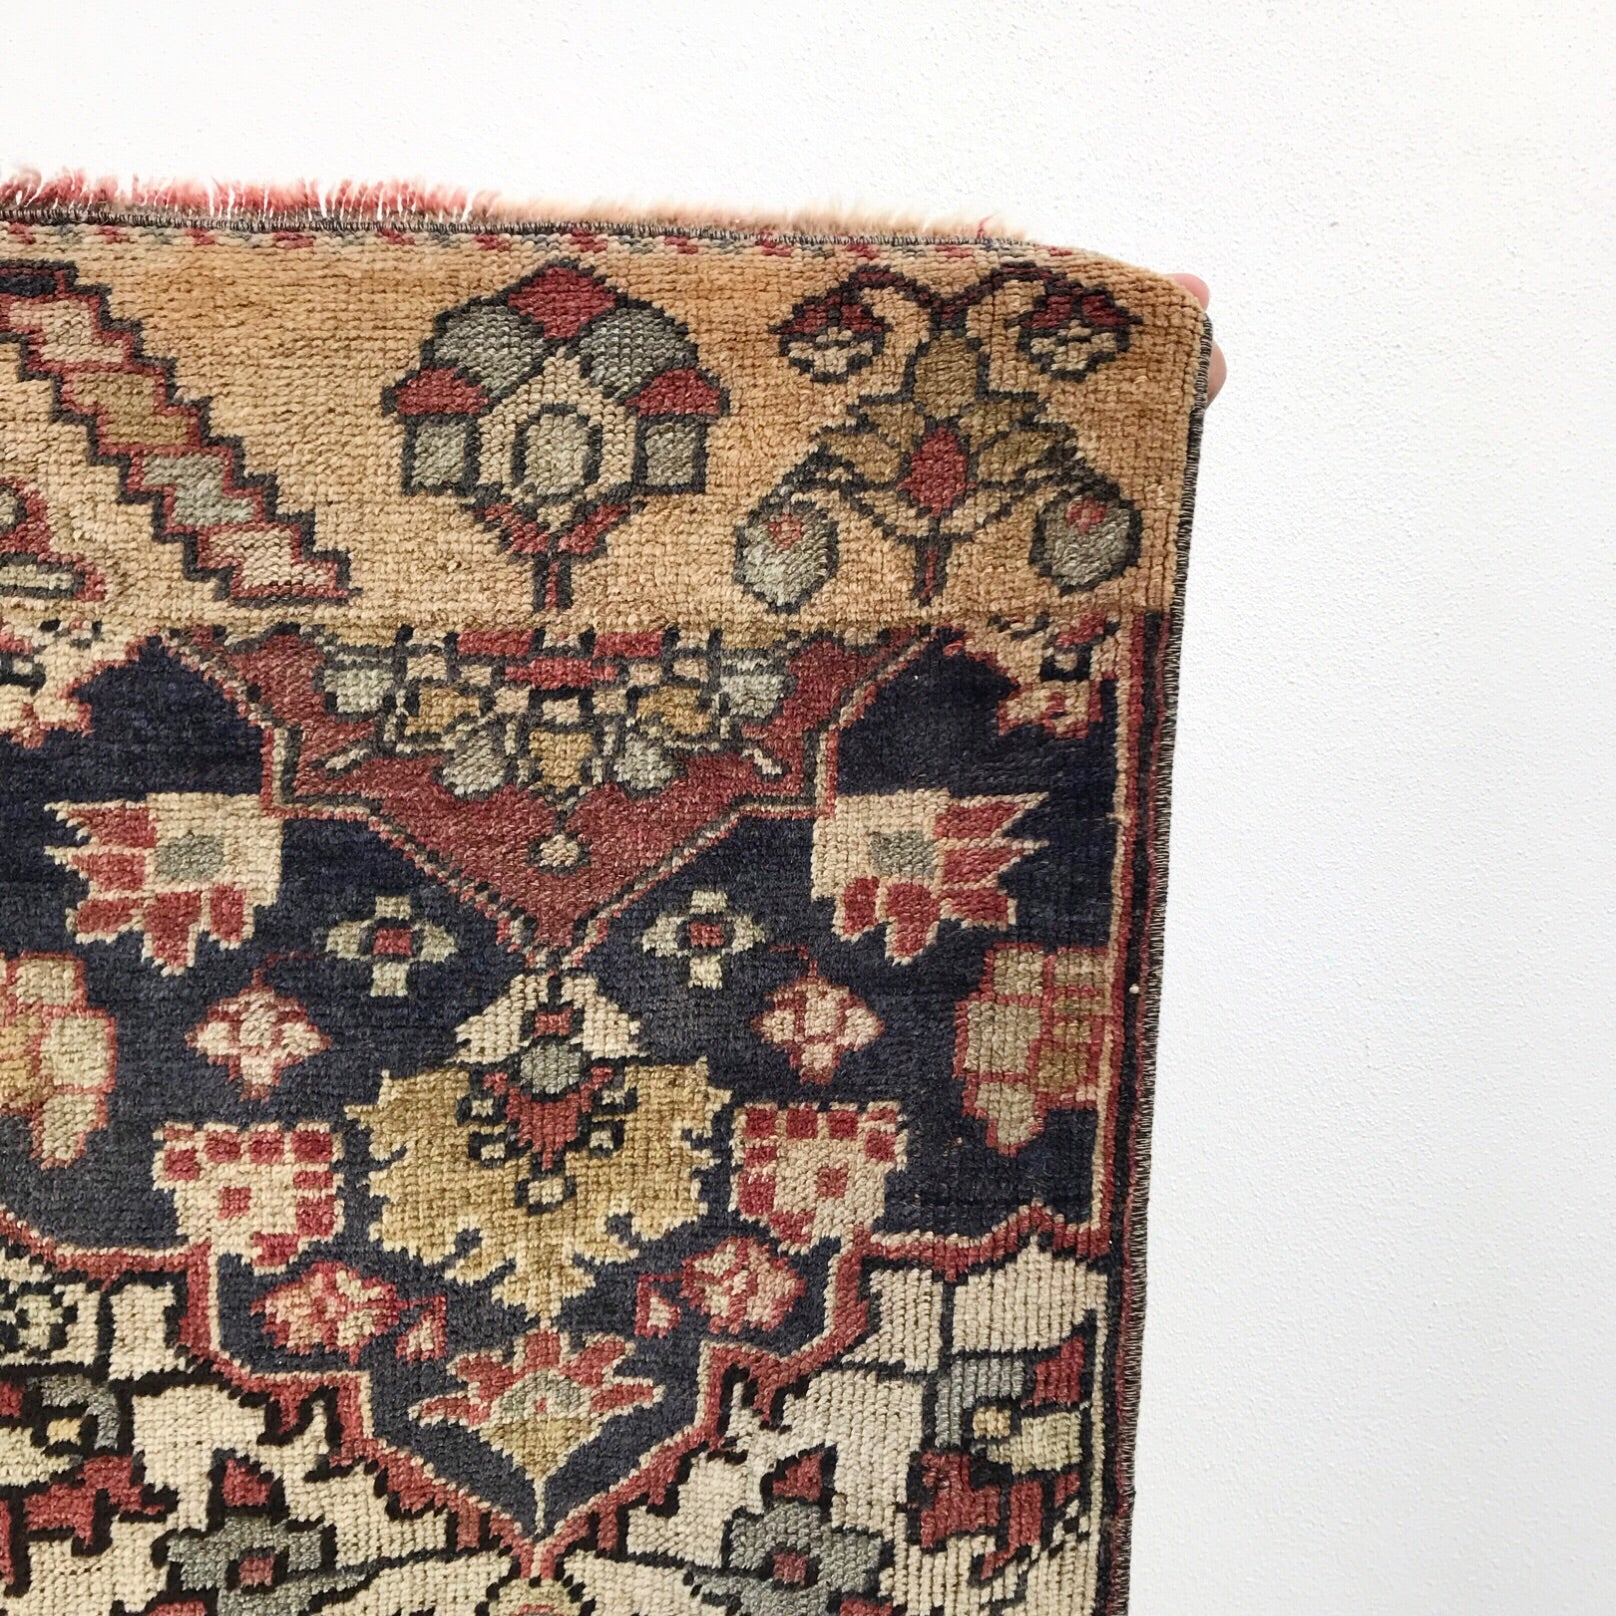 S20 Small Handwoven Vintage Rug 2'10x3'9